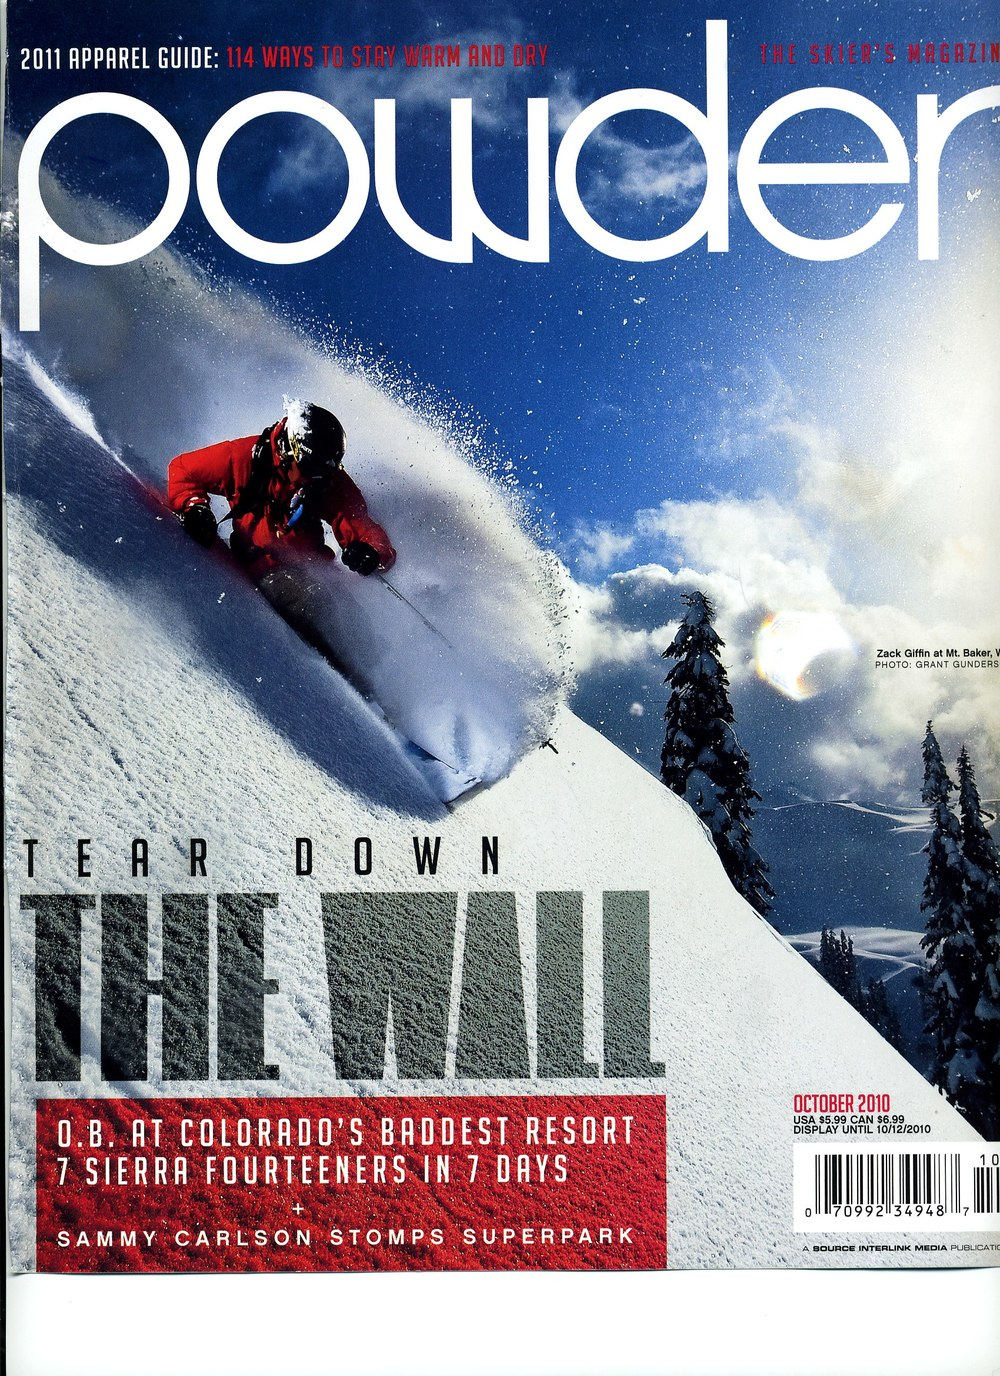 powder mag oct 2010134.jpg